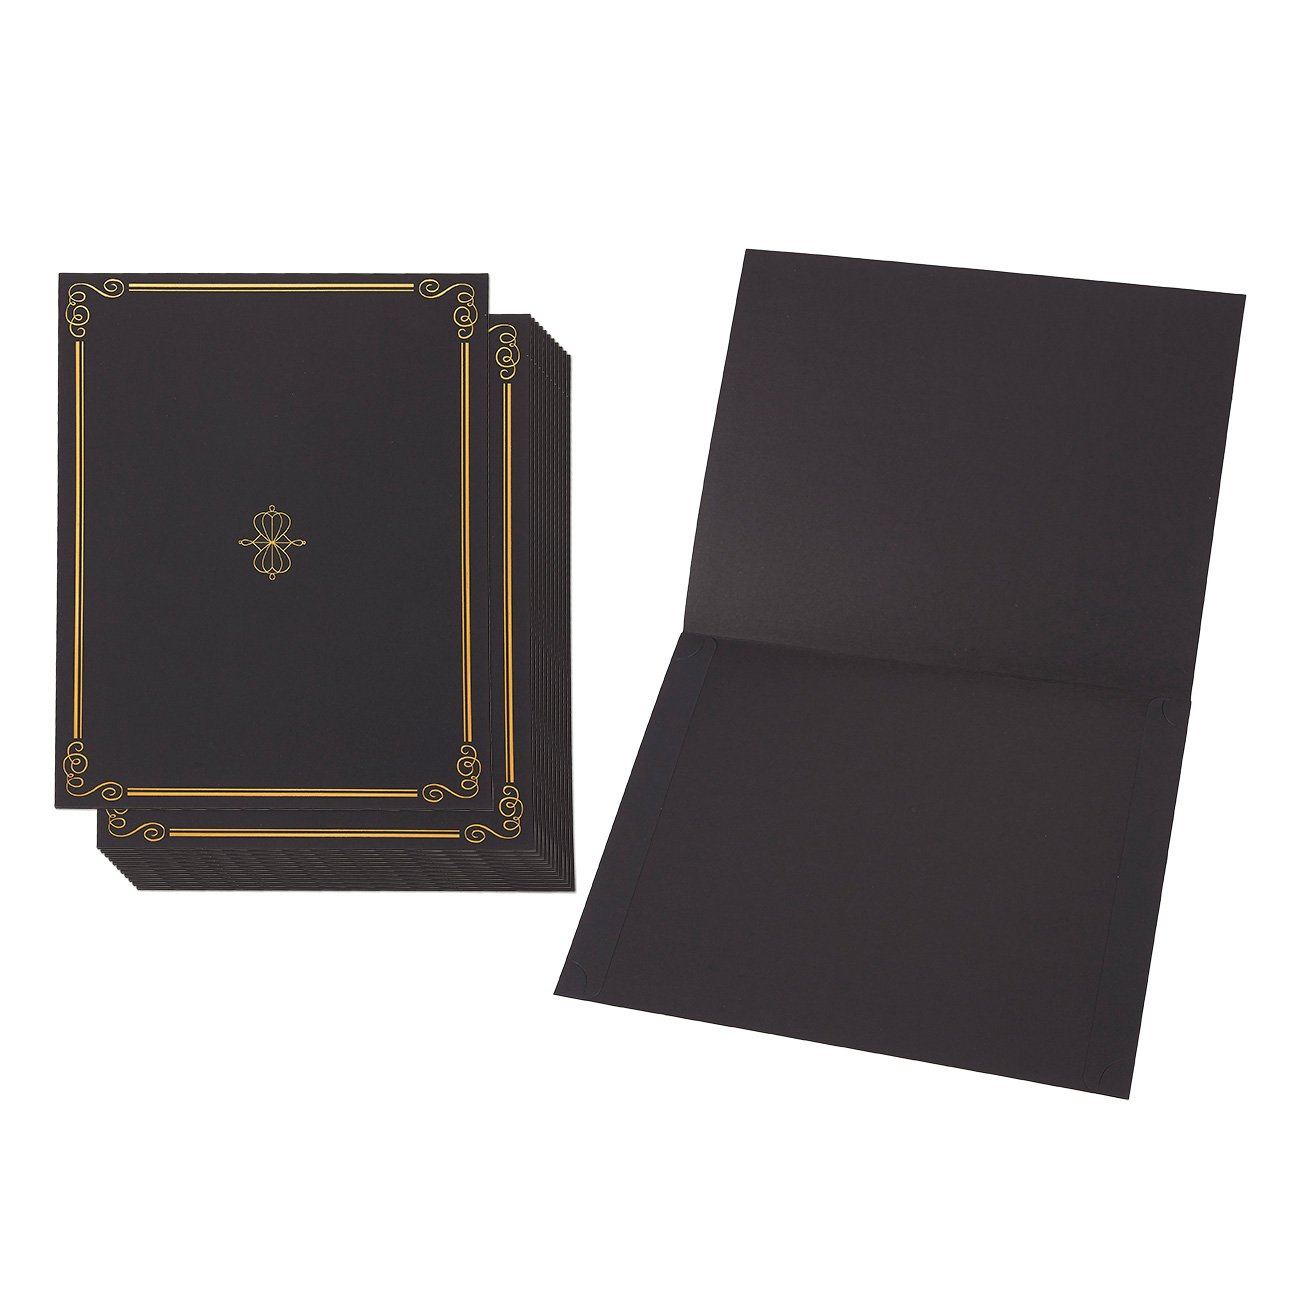 12-Pack Certificate Holder - Diploma Cover, Document Cover for Letter-Sized Award Certificates, Black, Gold Foil Border,11.2 x 8.7 Inches